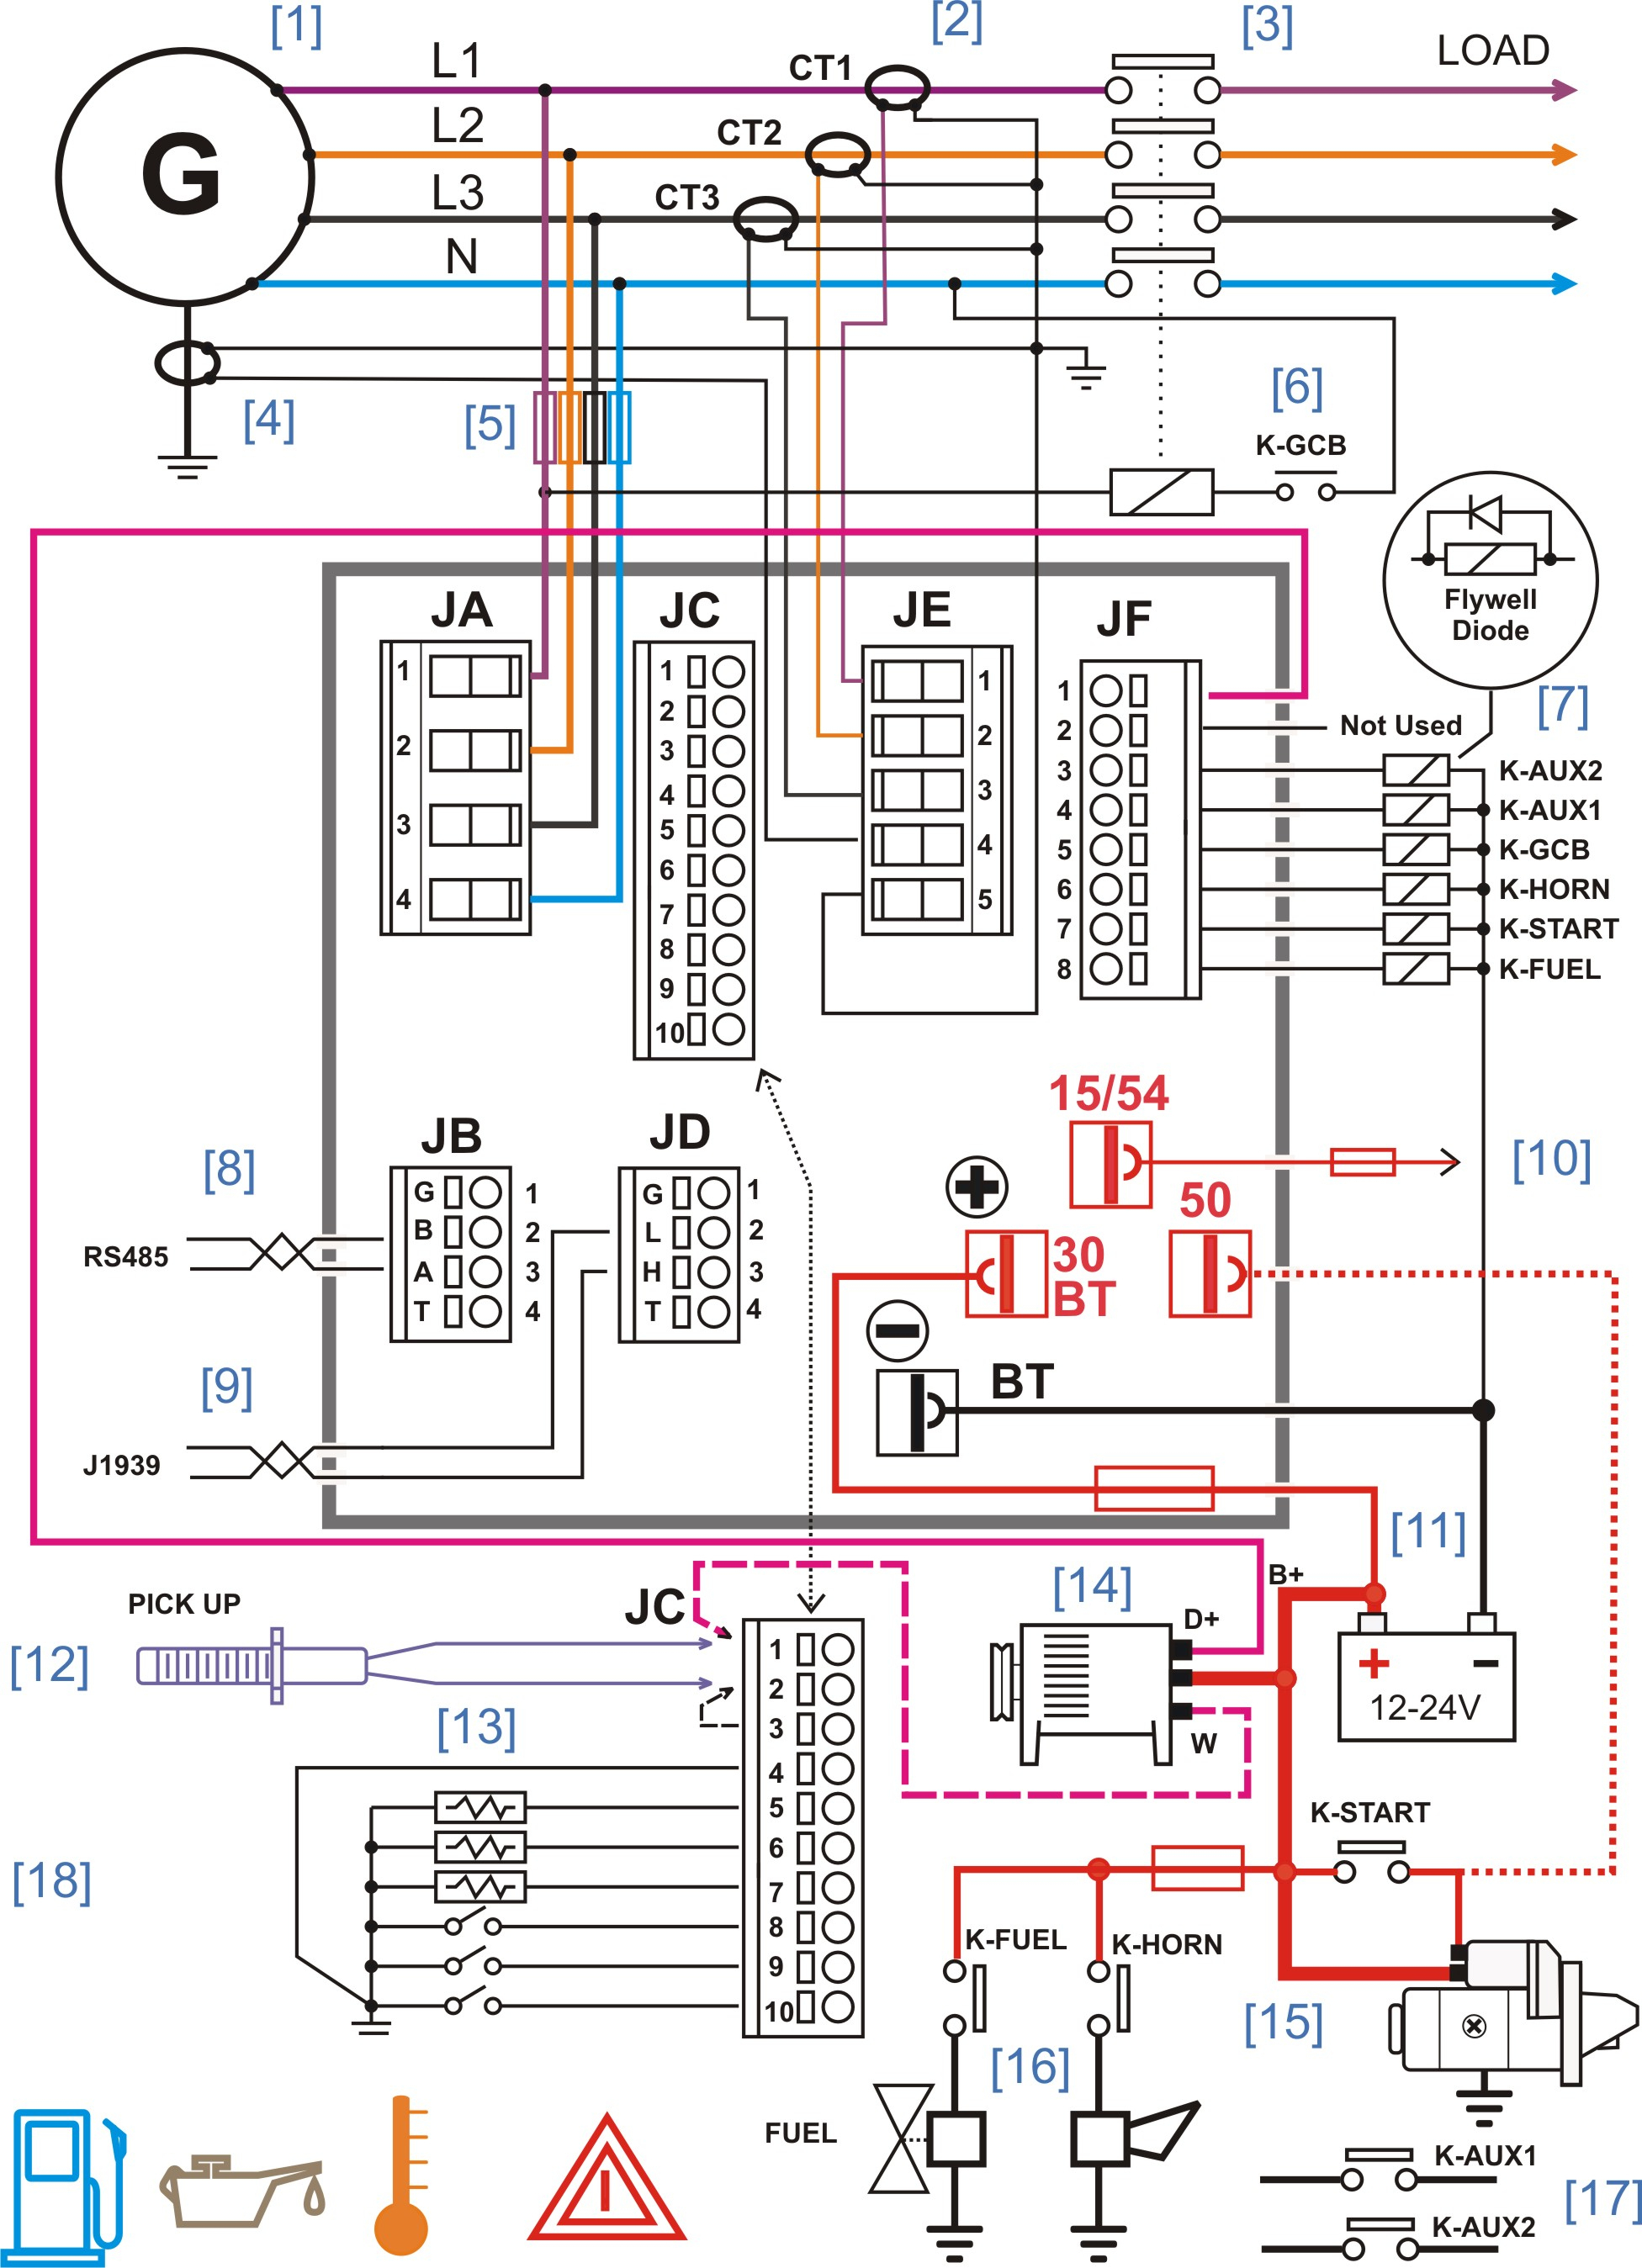 Electrical Panel Wiring Diagram Pdf | Wiring Diagram - Circuit Breaker Panel Wiring Diagram Pdf